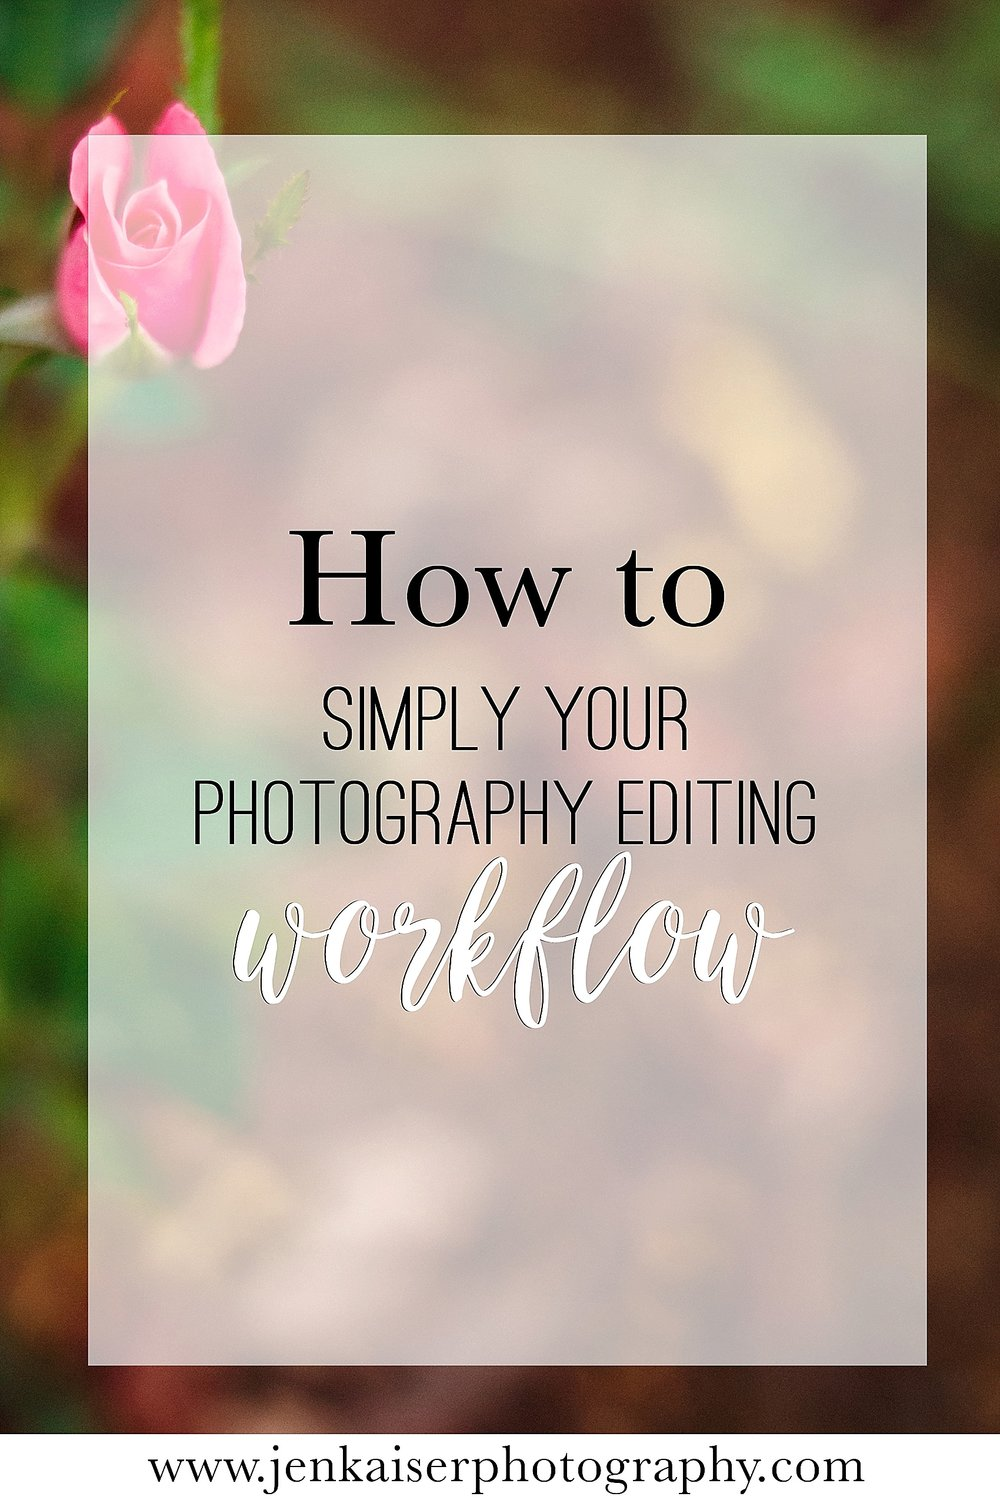 How to simplify your photography editing workflow